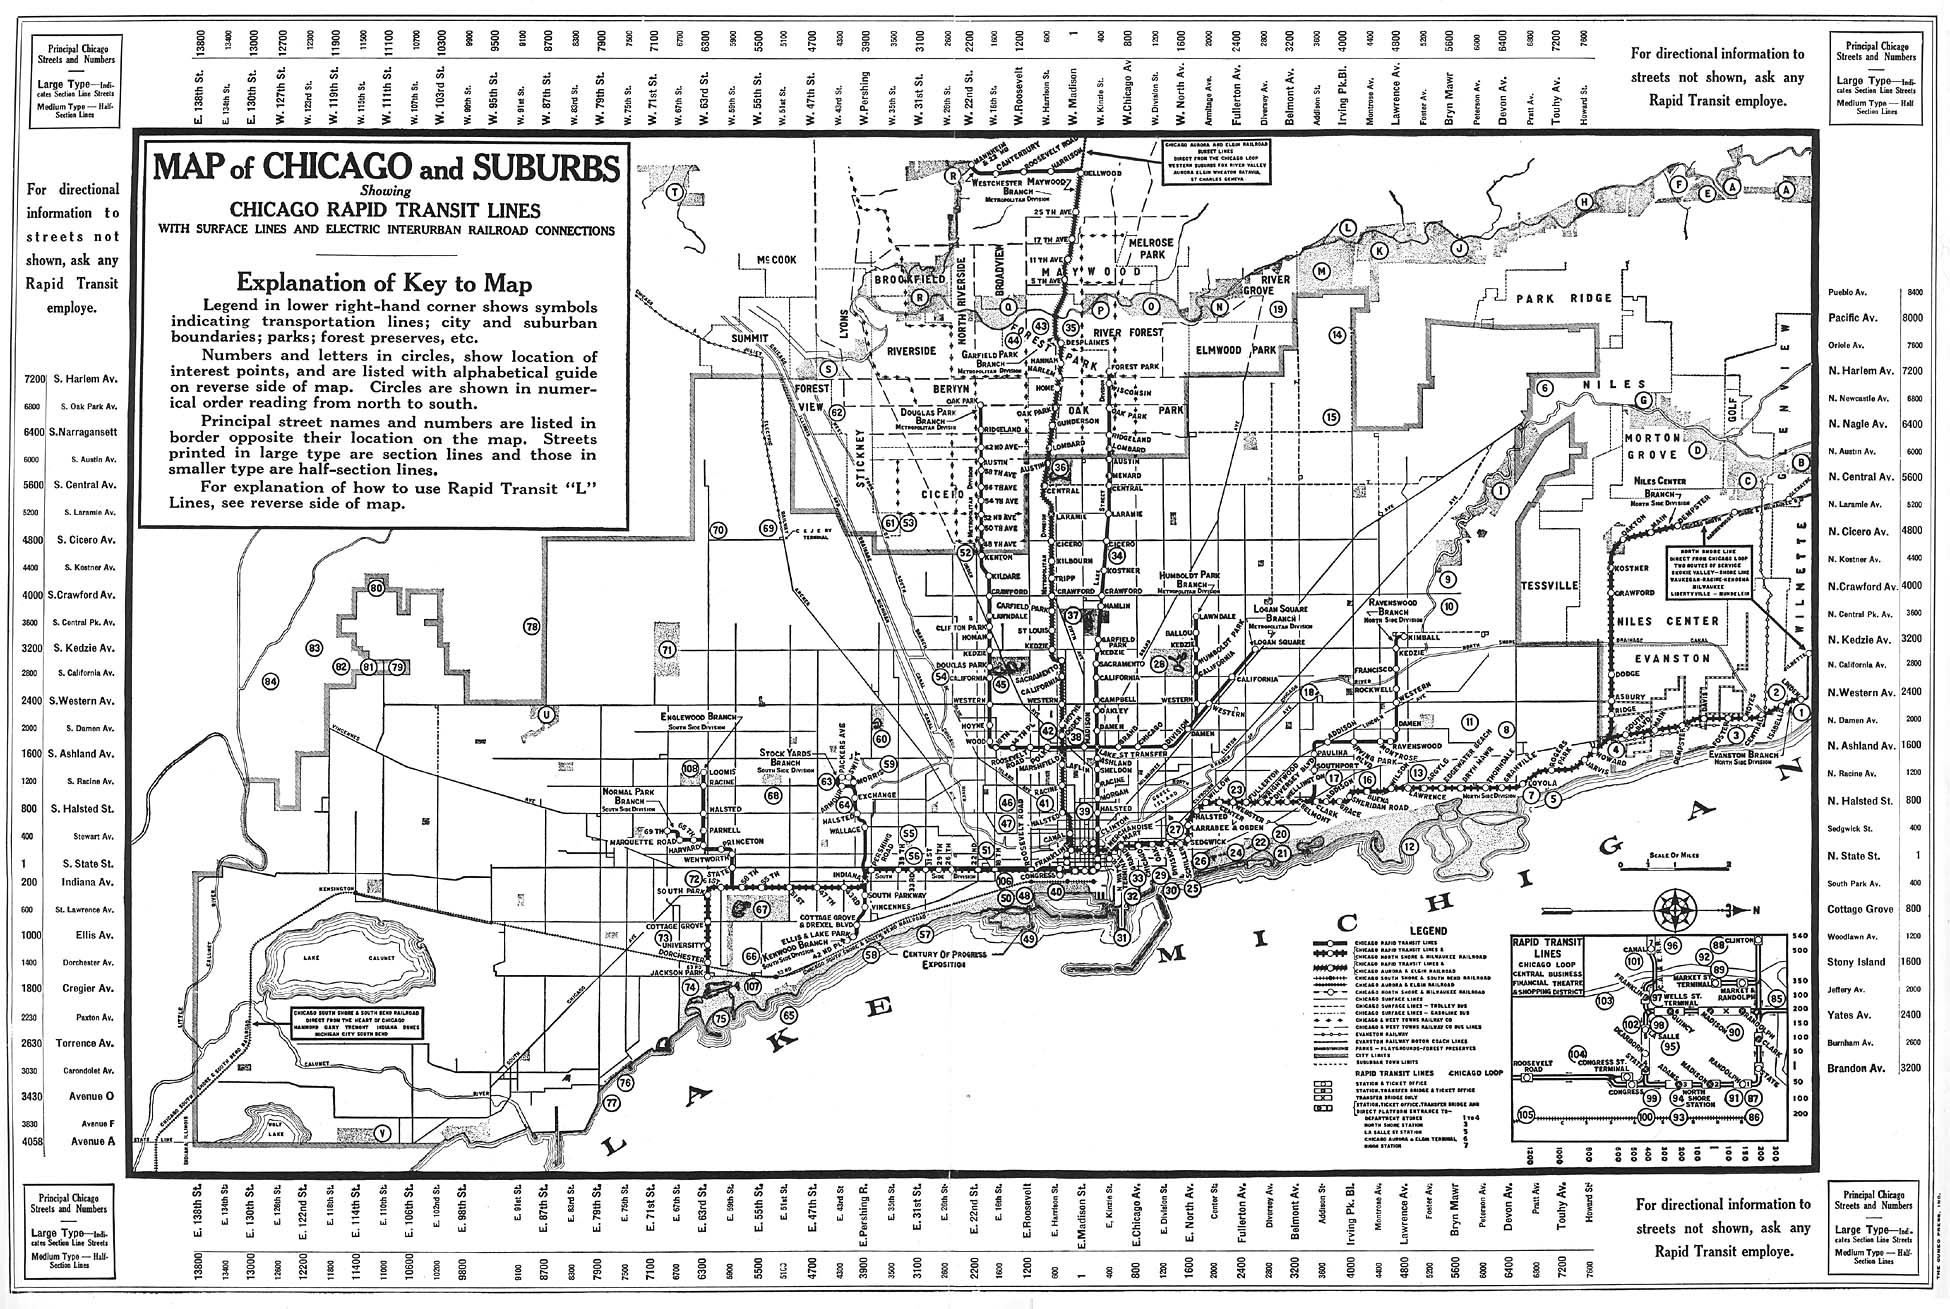 Chicago Lorg System Maps Route Maps - Chicago map northwest suburbs